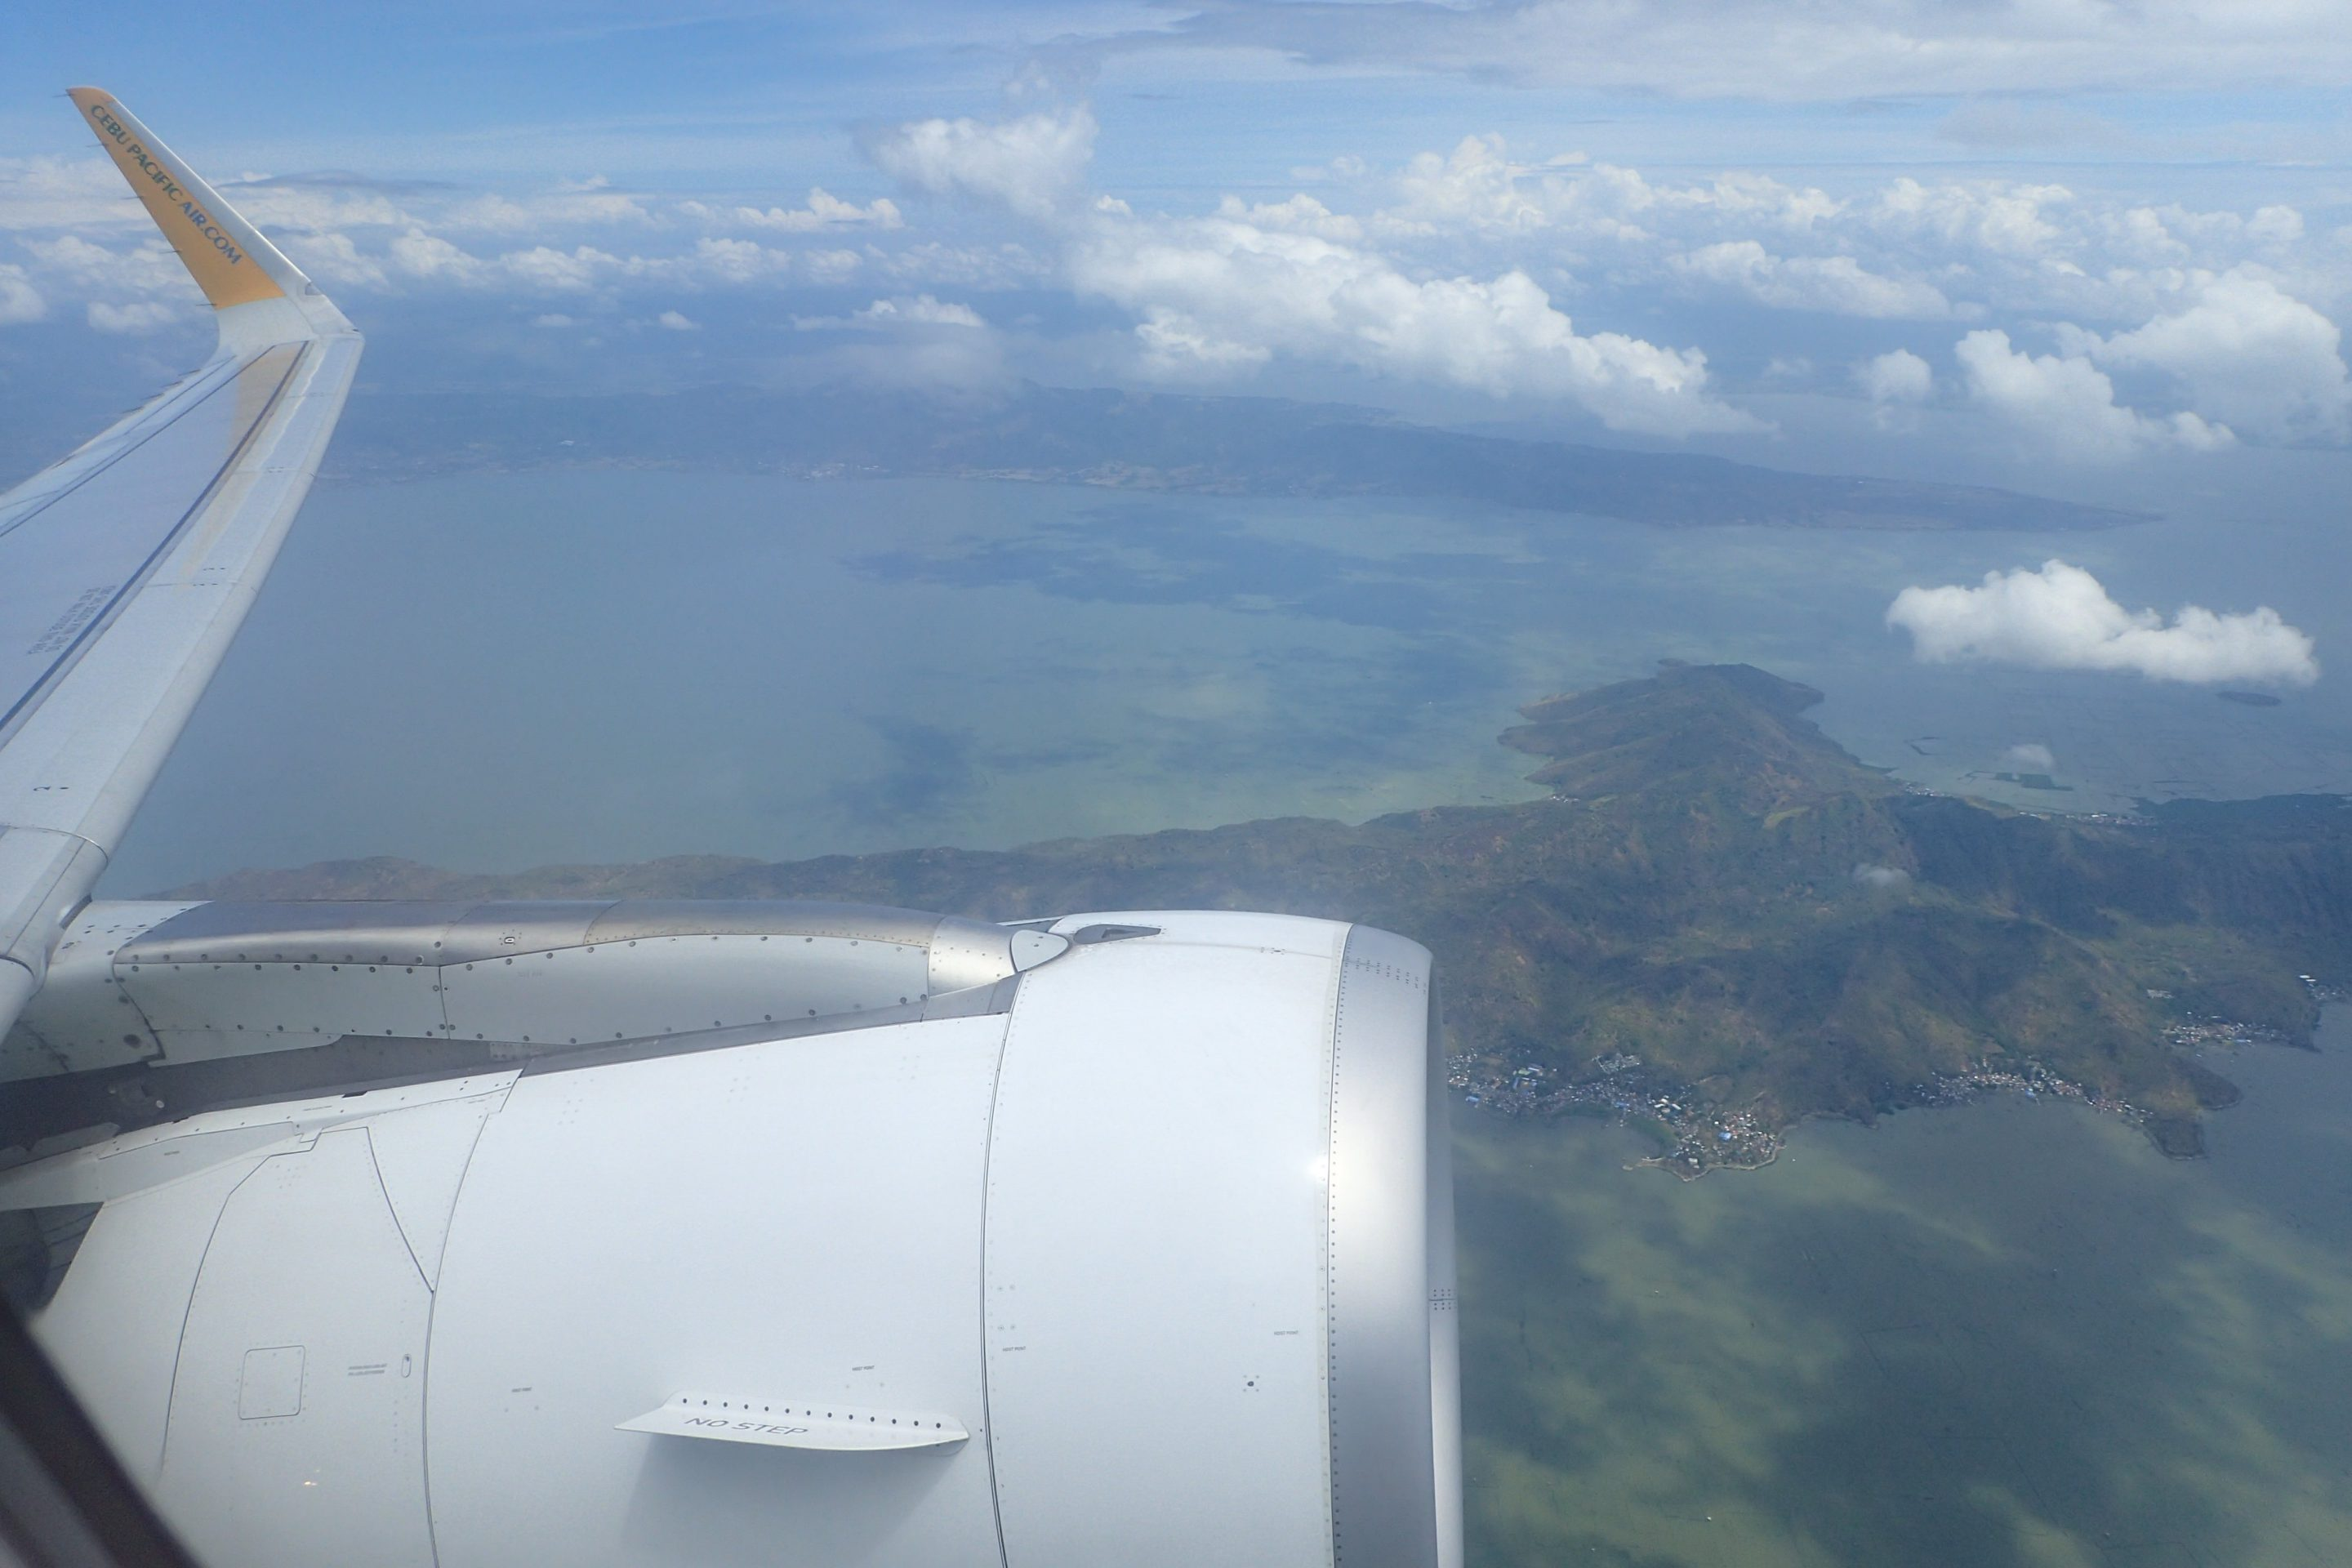 Approaching Bacolod